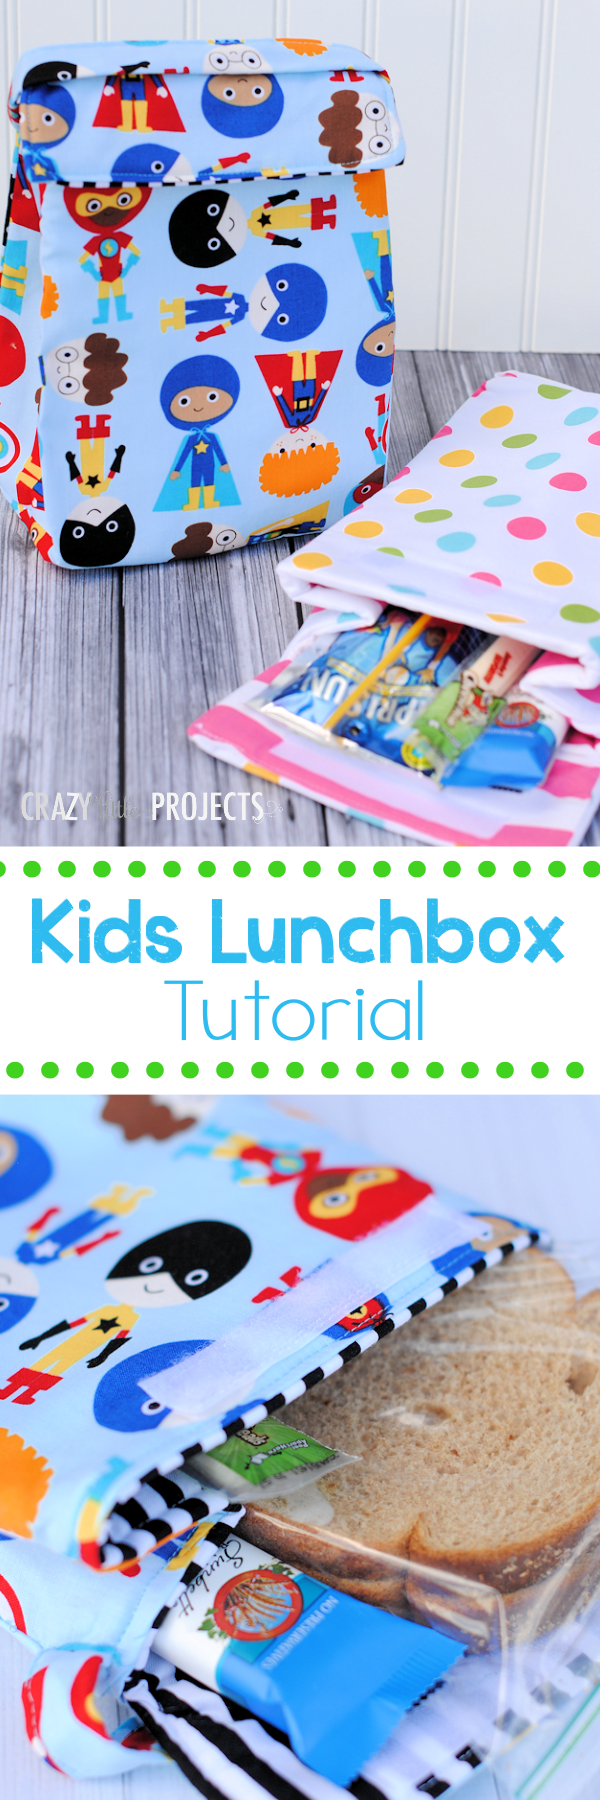 Kids Insulated Lunch Box Tutorial and Pattern